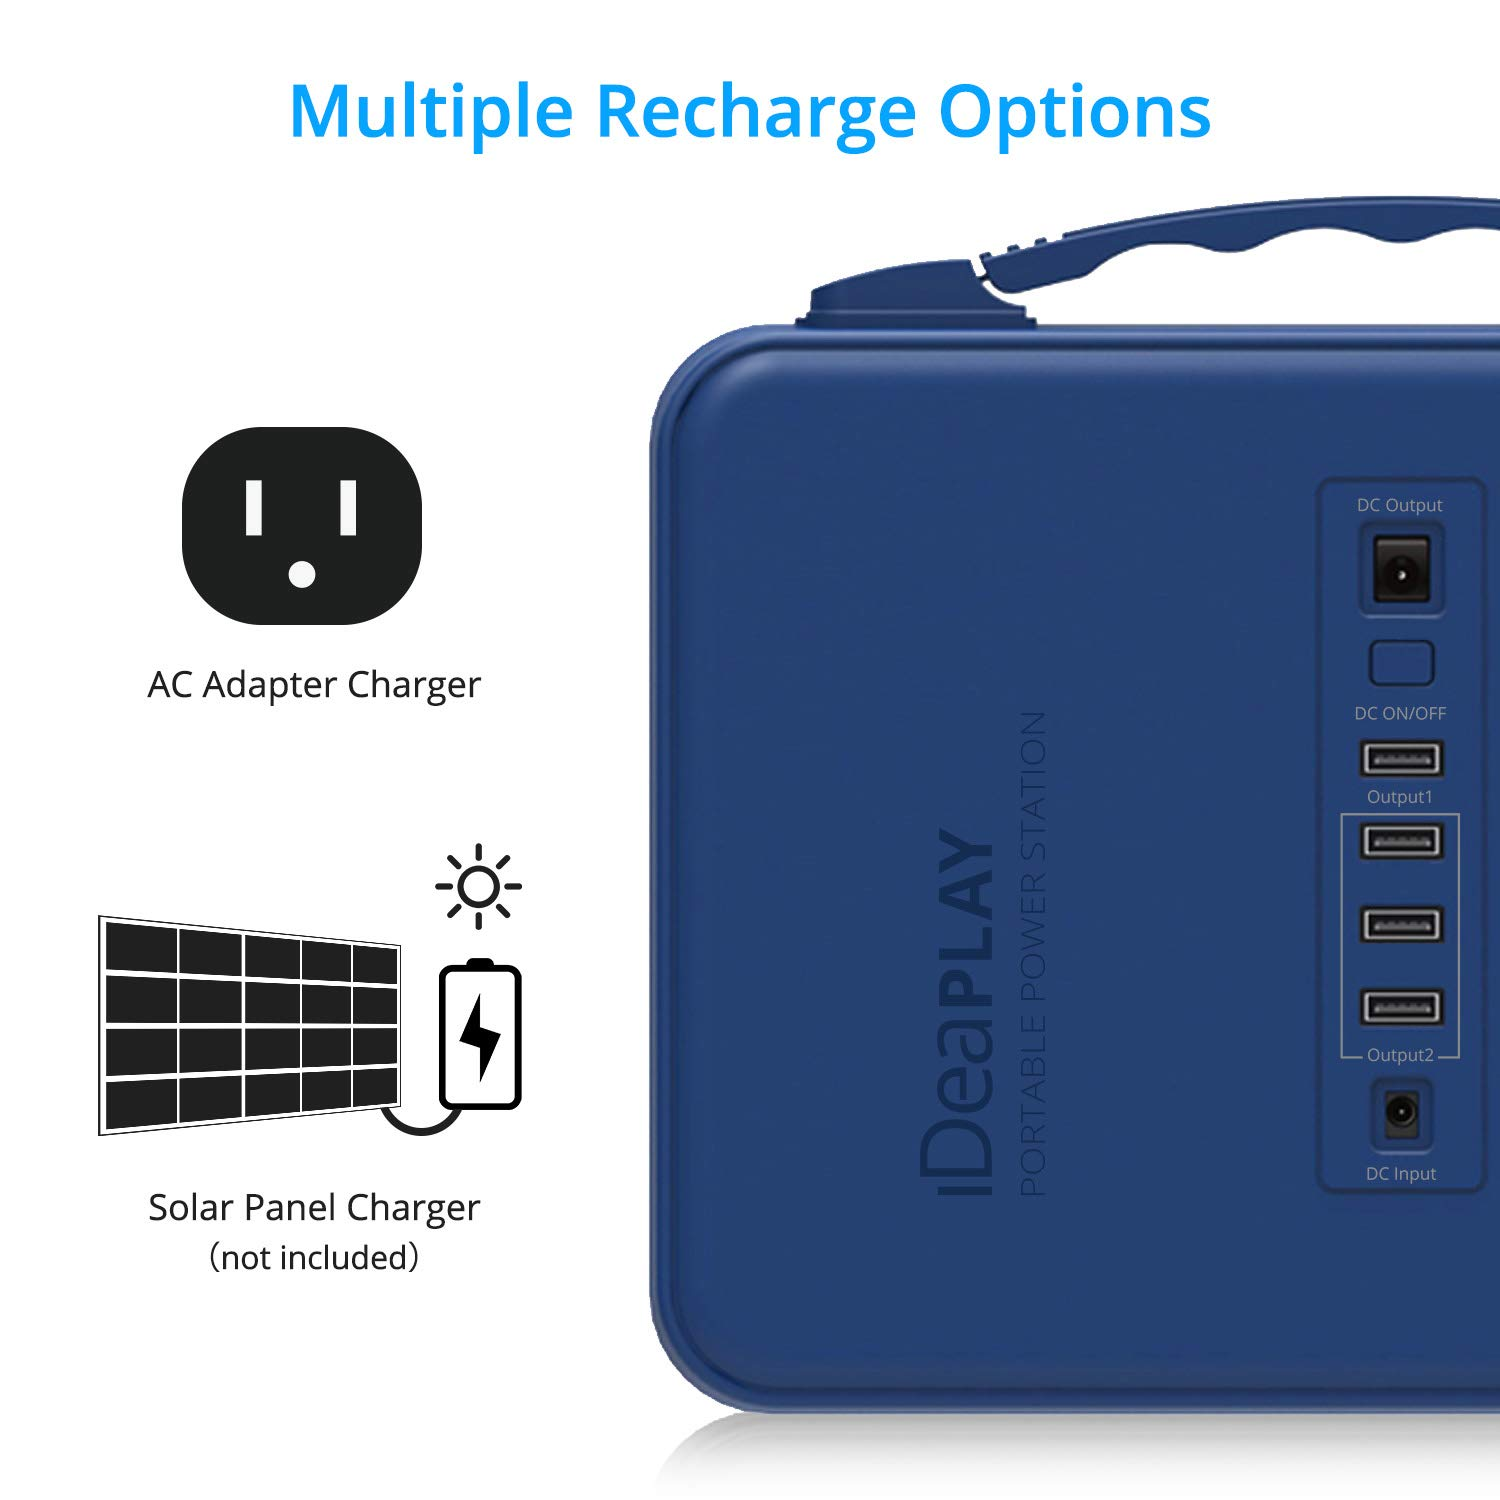 IDEAPLAY Portable Power Station Generator 150Wh, Rechargeable Emergency Backup Lithium Battery with 110V/200W AC Outlet, 12V DC Output, USB Ports, LED Flashlight, for Home Travel Camping Outdoors by IDEAPLAY (Image #3)